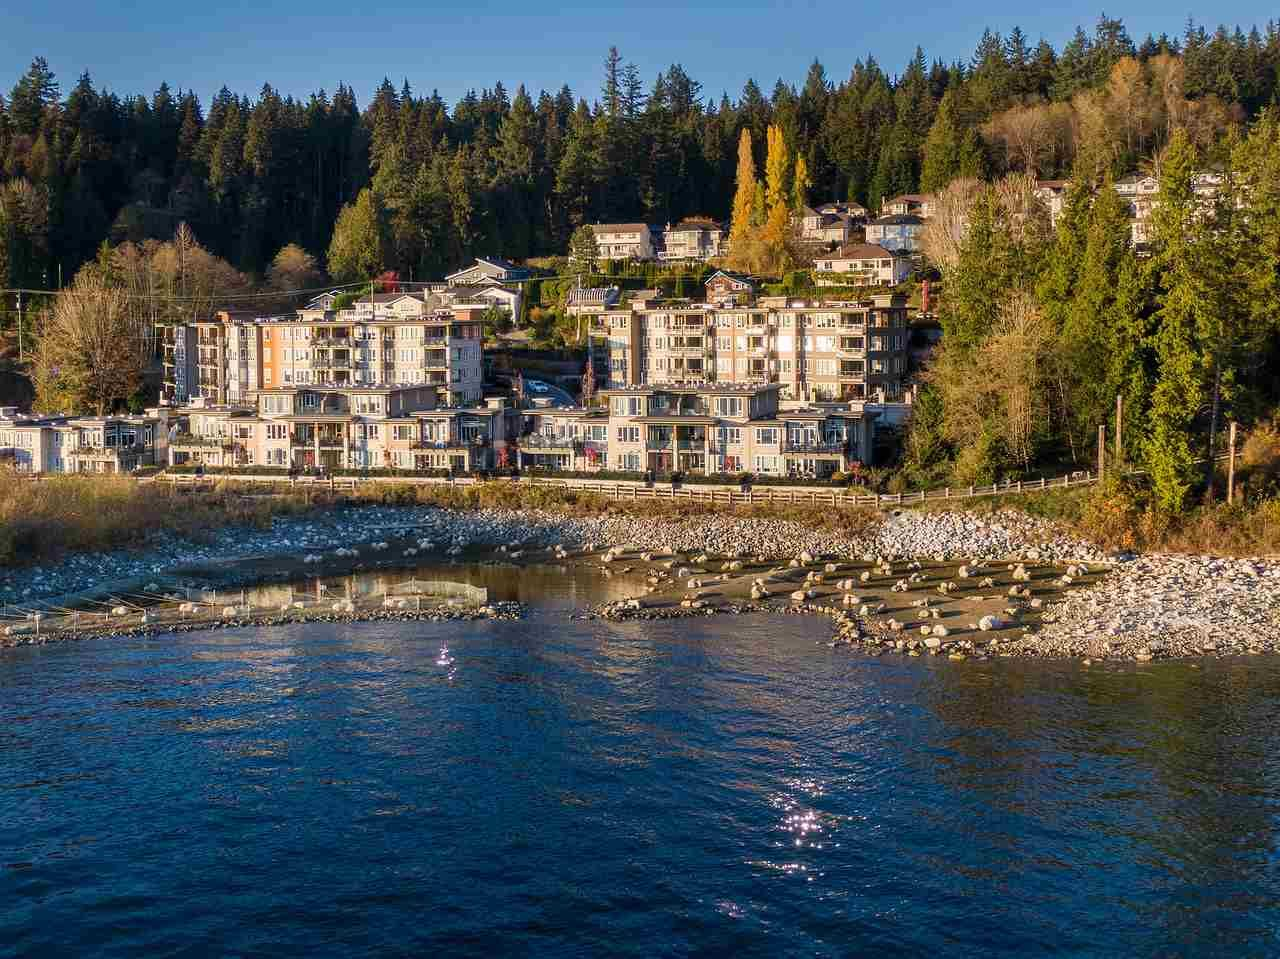 """Main Photo: 3917 CATES LANDING Way in North Vancouver: Roche Point Townhouse for sale in """"CATES LANDING"""" : MLS®# R2516583"""